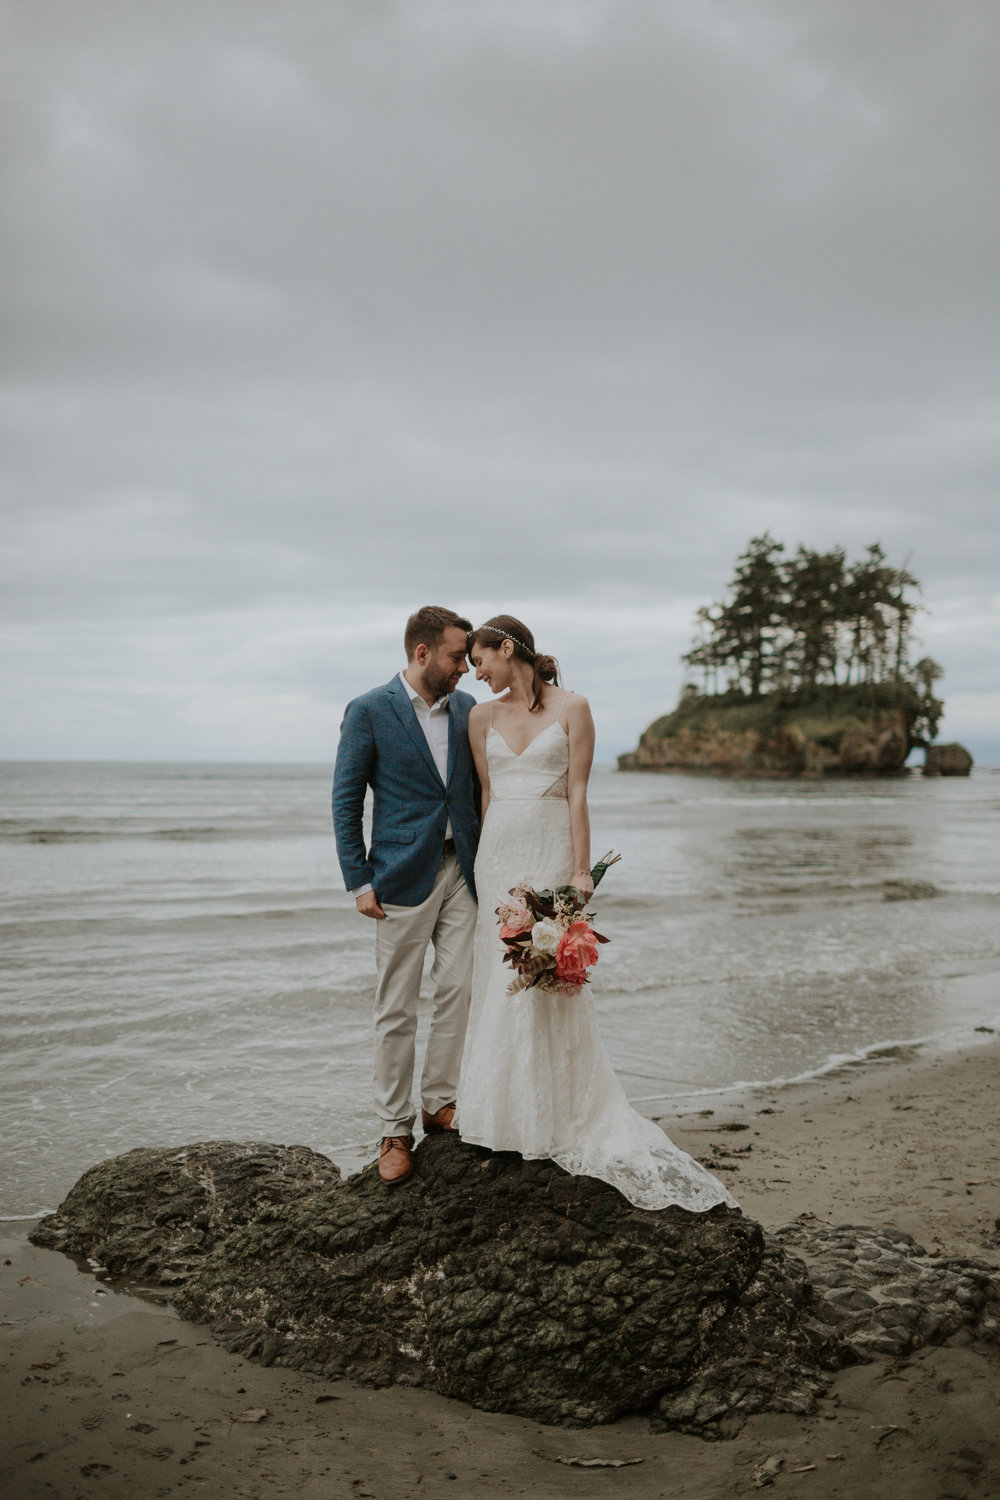 PNW-elopement-wedding-engagement-olympic national park-port angeles-hurricane ridge-lake crescent-kayla dawn photography- photographer-photography-kayladawnphoto-303.jpg